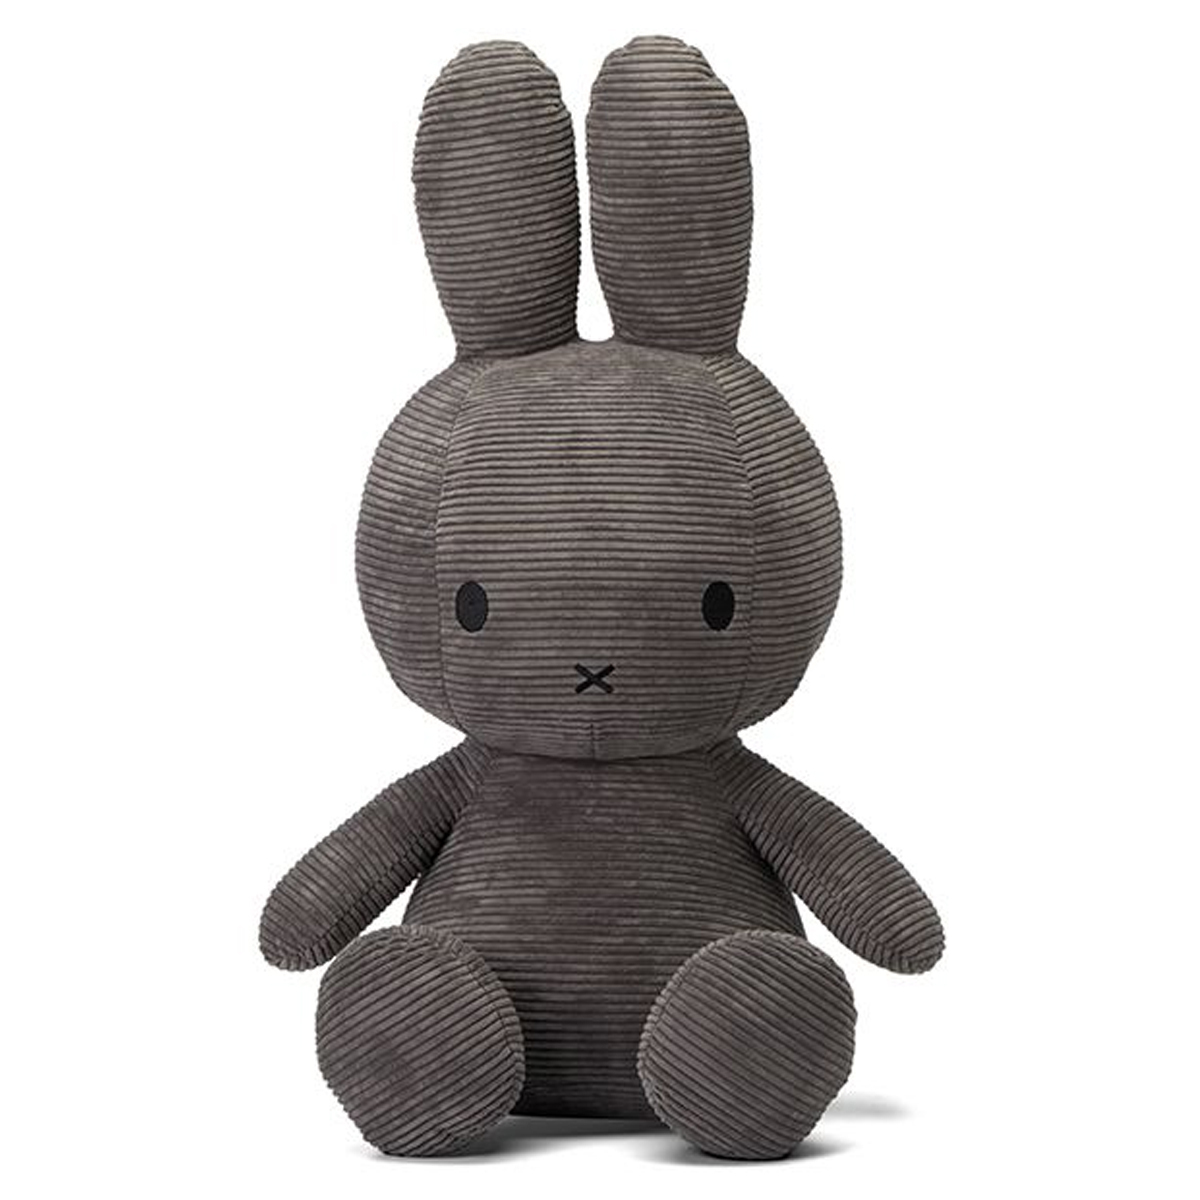 Peluche Lapin Miffy Anthracite - Géant Peluche Lapin Miffy Anthracite 70 cm